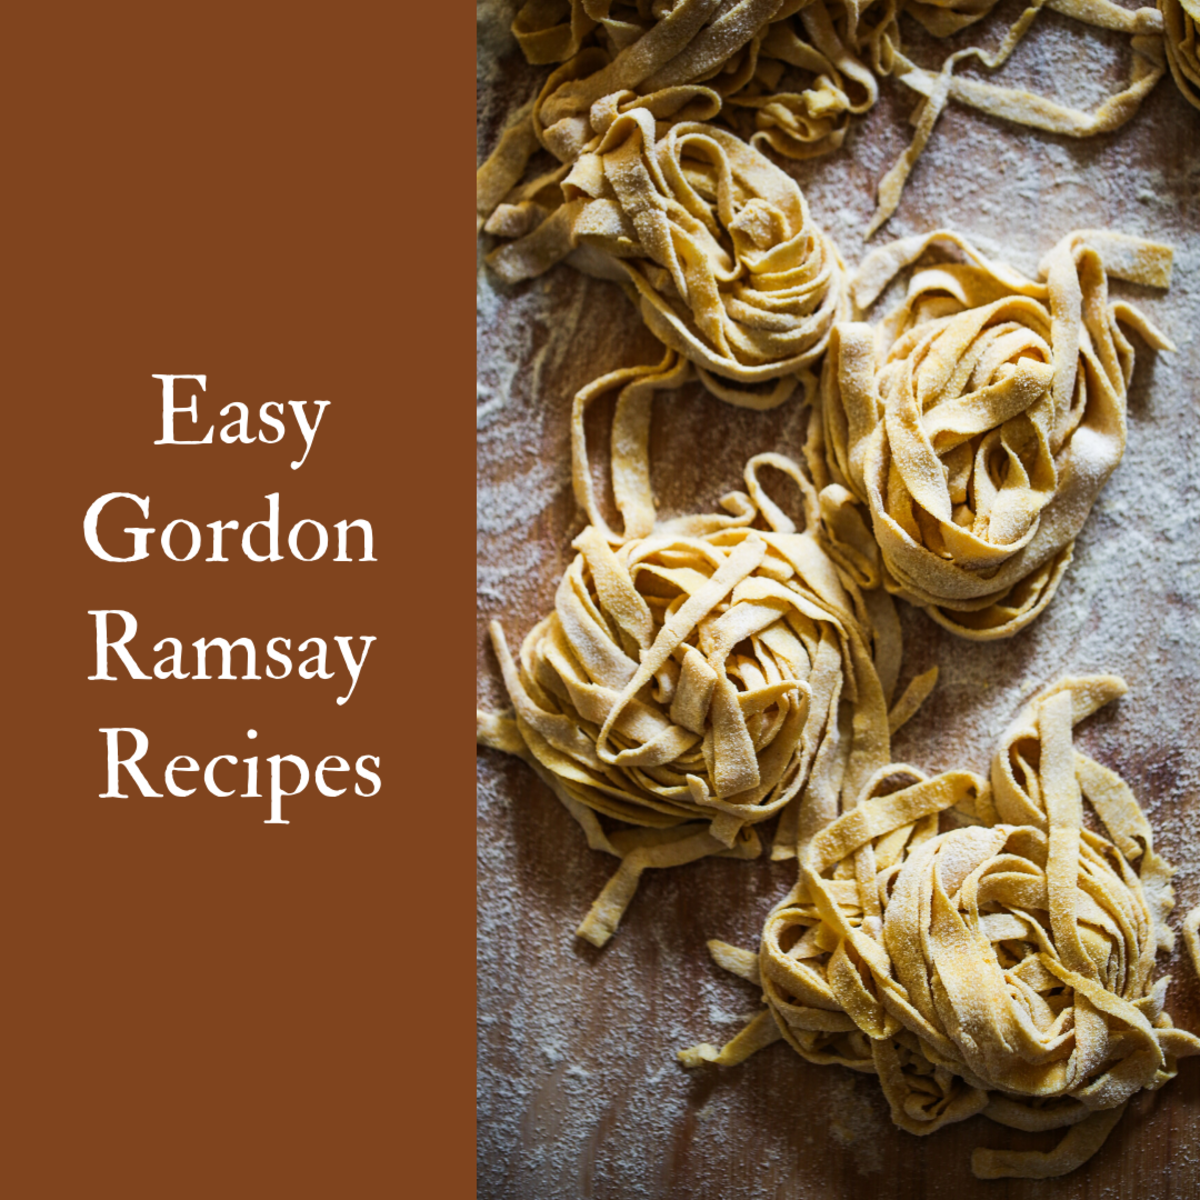 These recipes are truly delicious and easy to make at home.